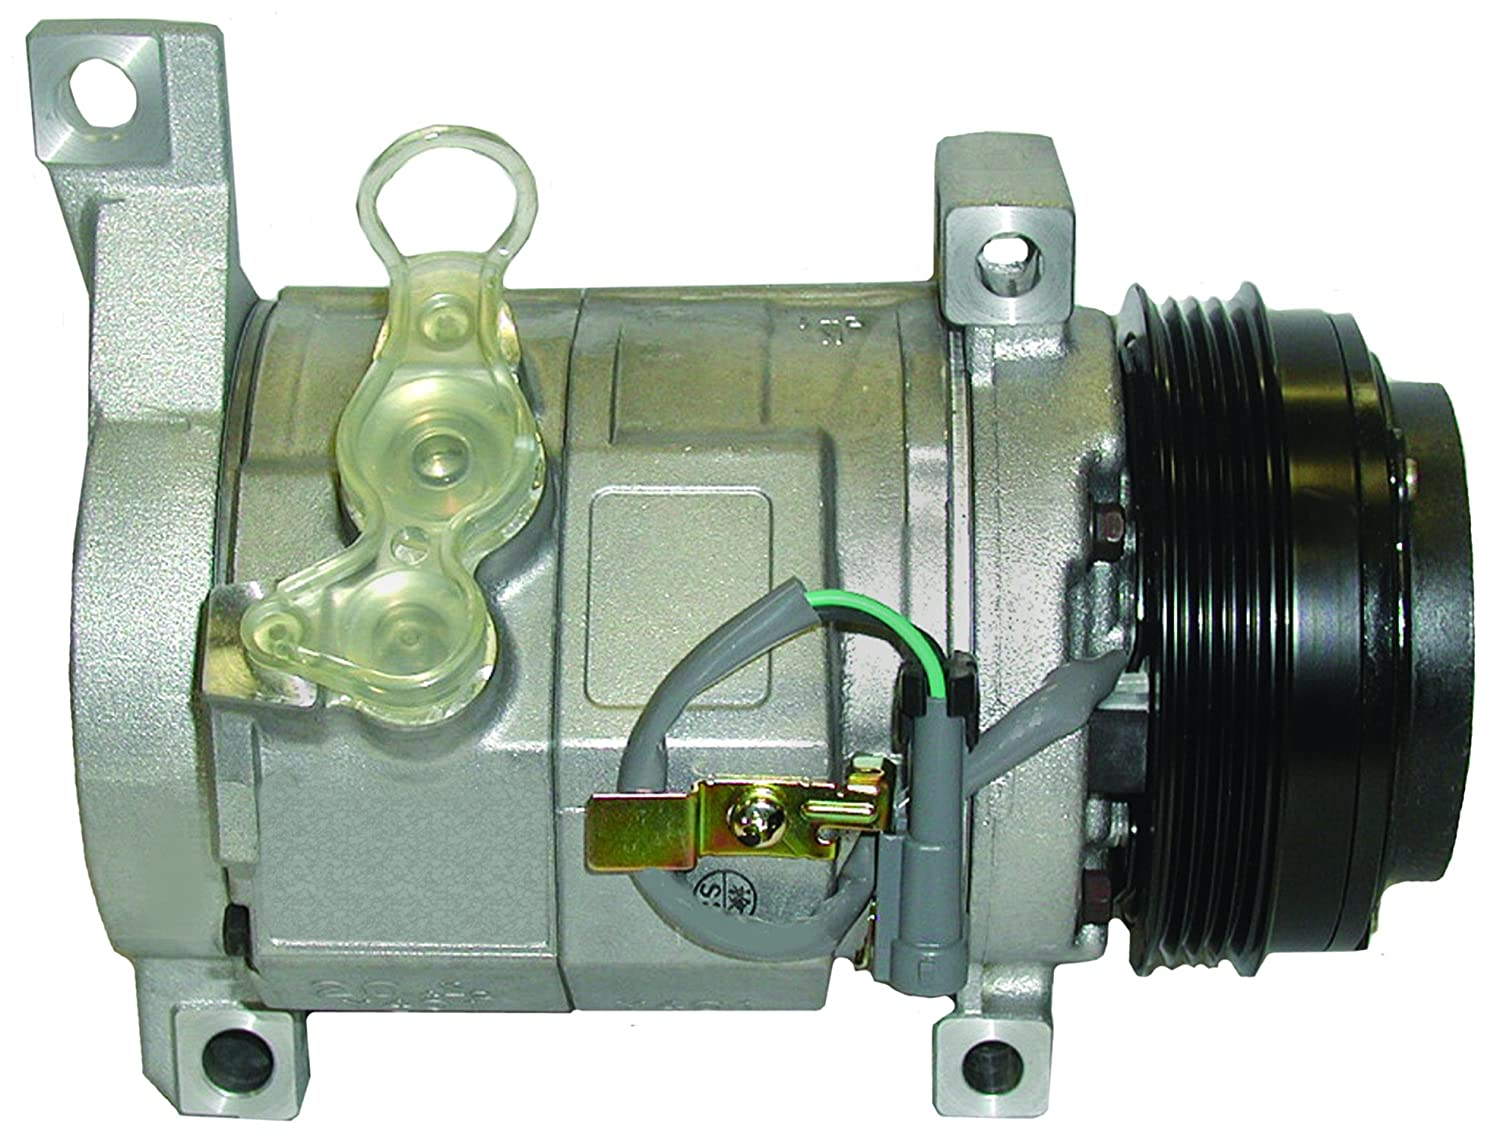 ACDelco 15-20941 GM Original Equipment Air Conditioning Compressor and Clutch Assembly 15-20941-ACD